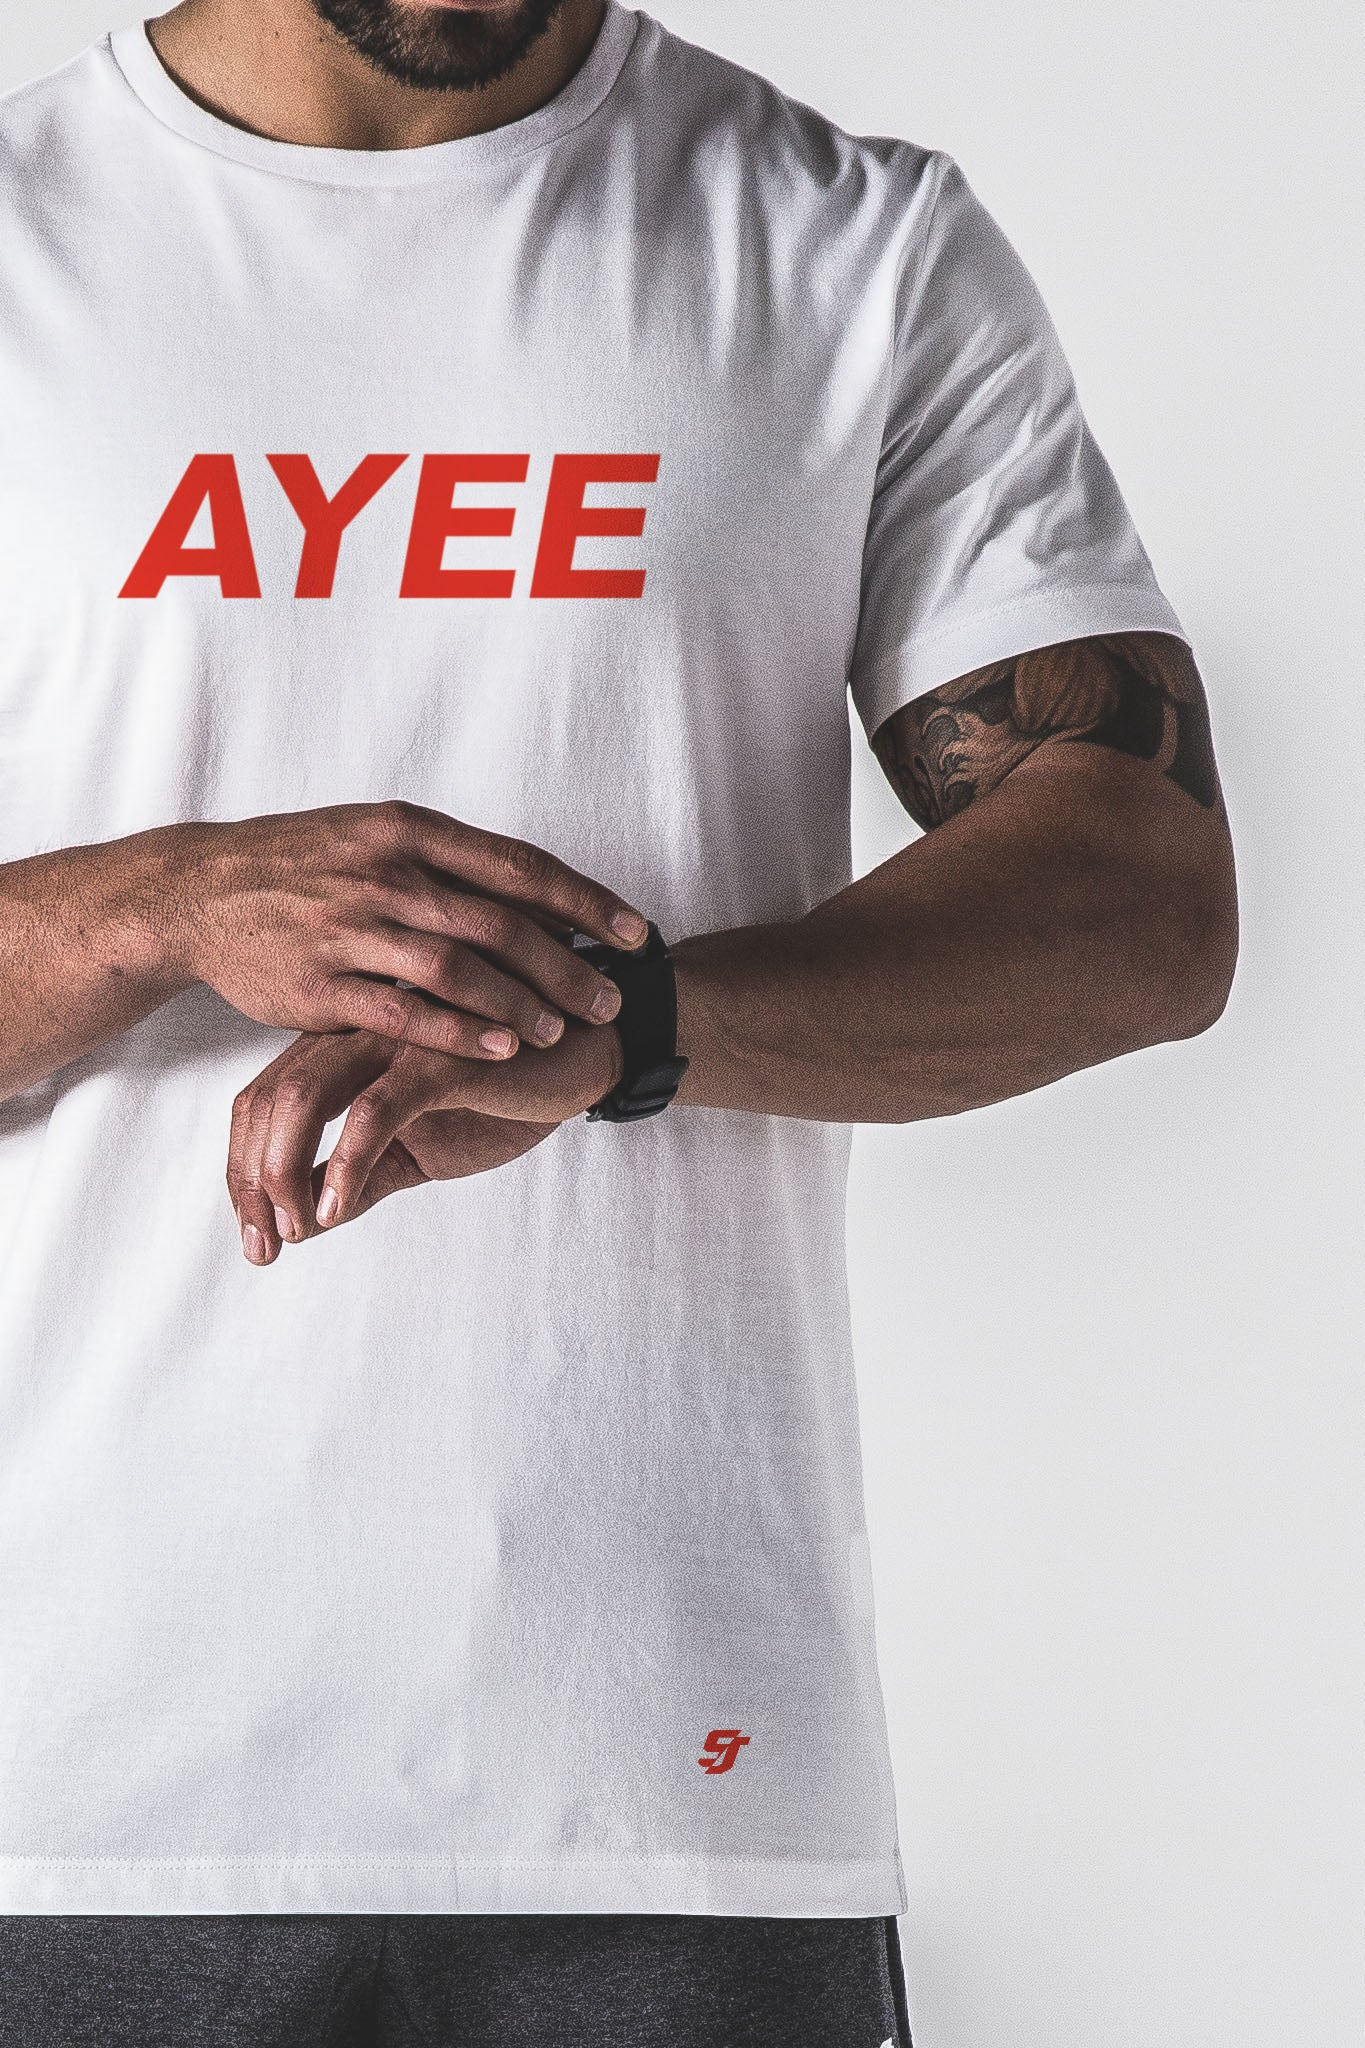 SJ Ayee Tee - White / Red